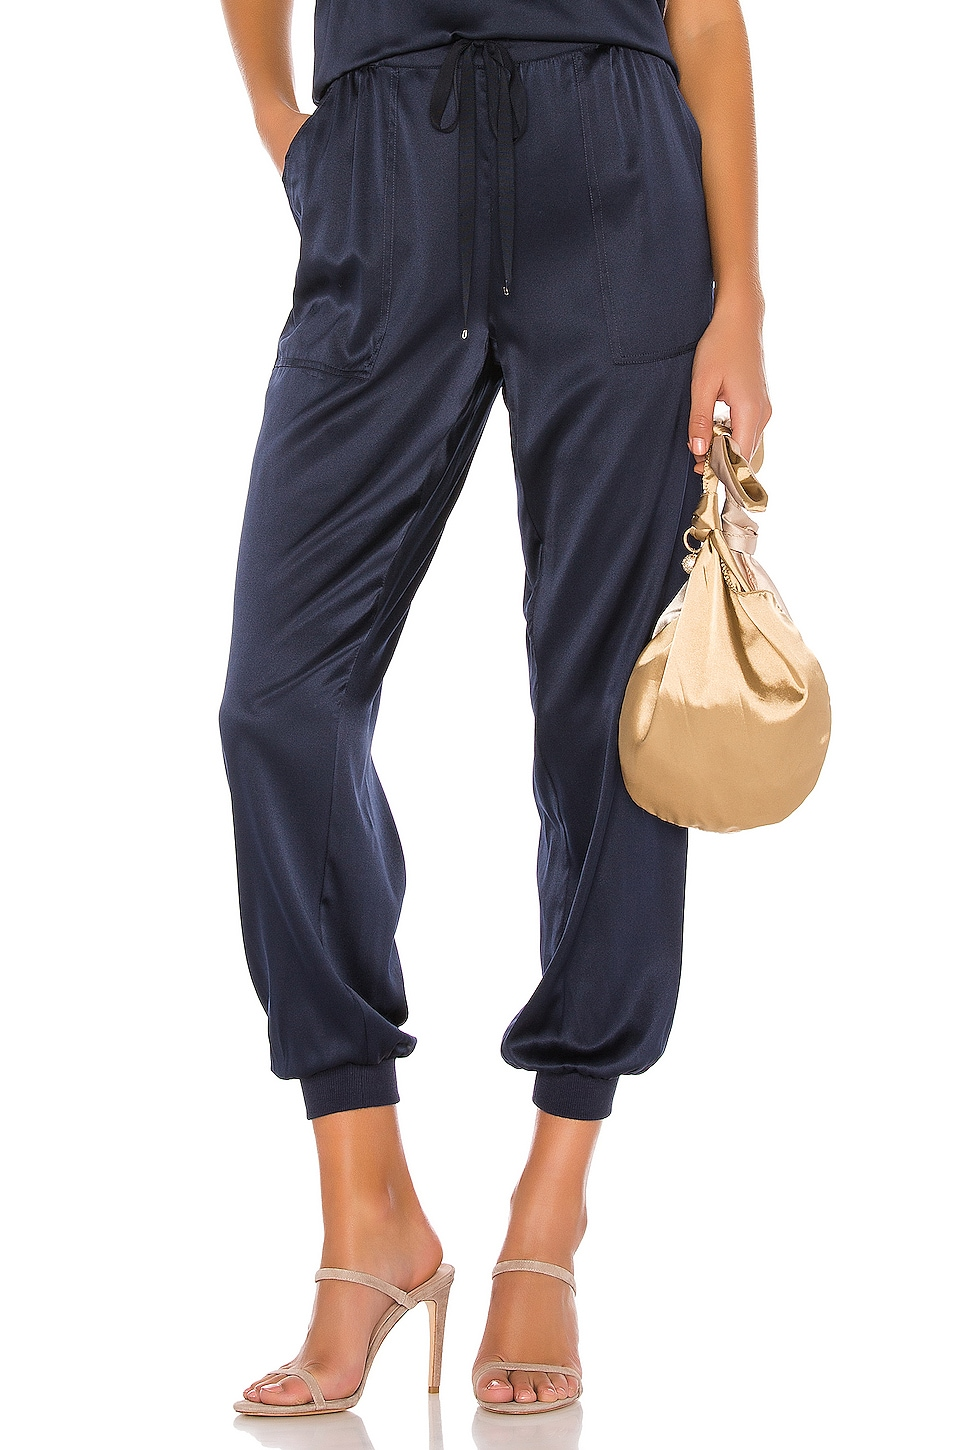 CAMI NYC The Zoe Pant in Cosmos